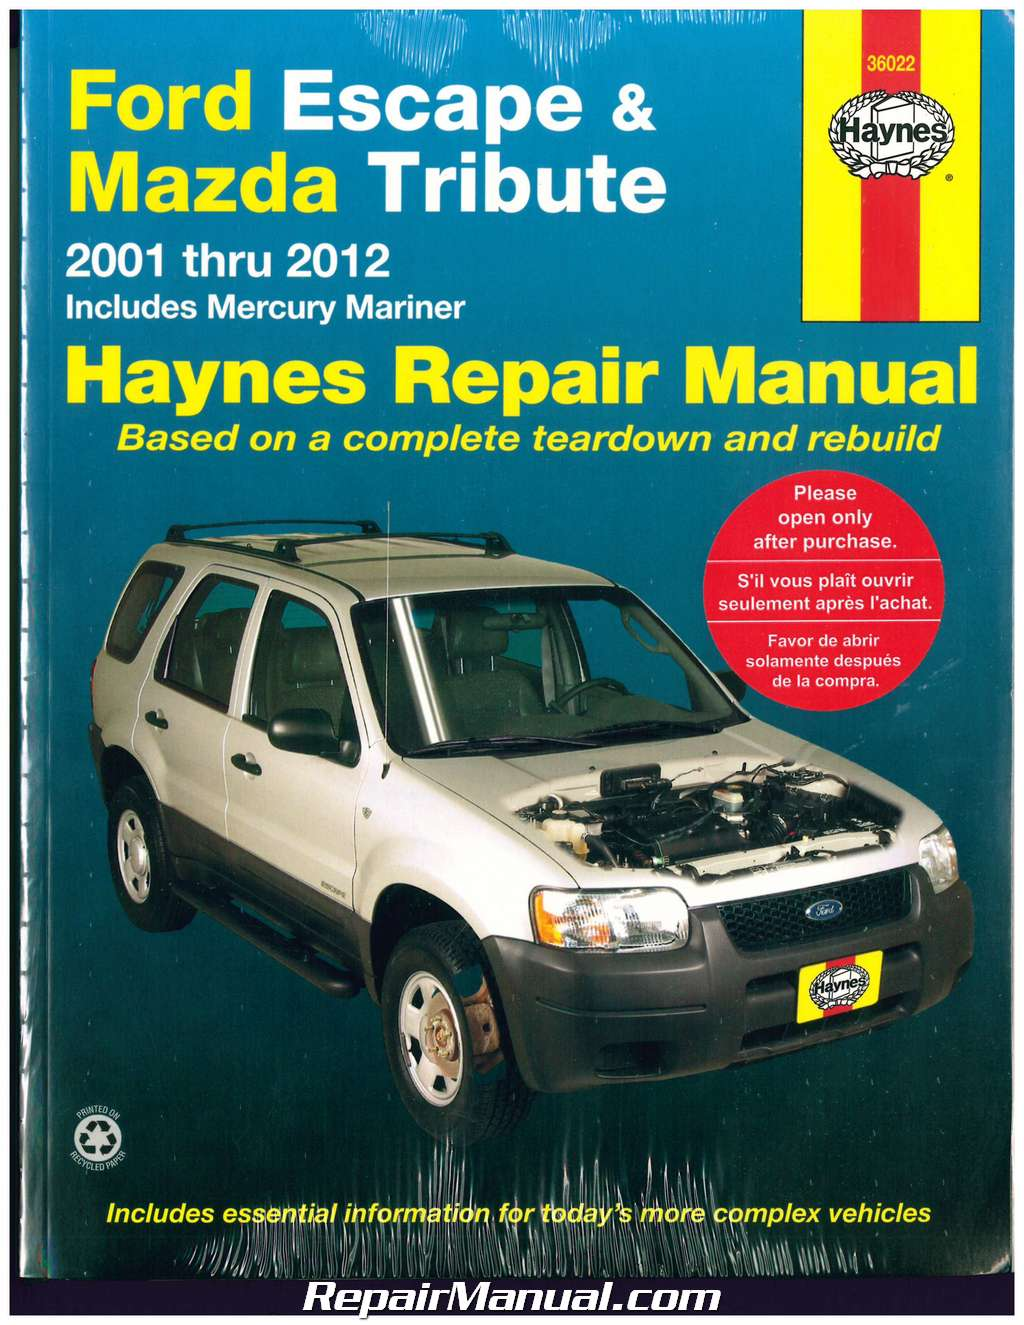 haynes ford escape and mazda tribute 2001 2012 repair manual rh repairmanual com owners manual mazda tribute 2005 owners manual mazda tribute 2002